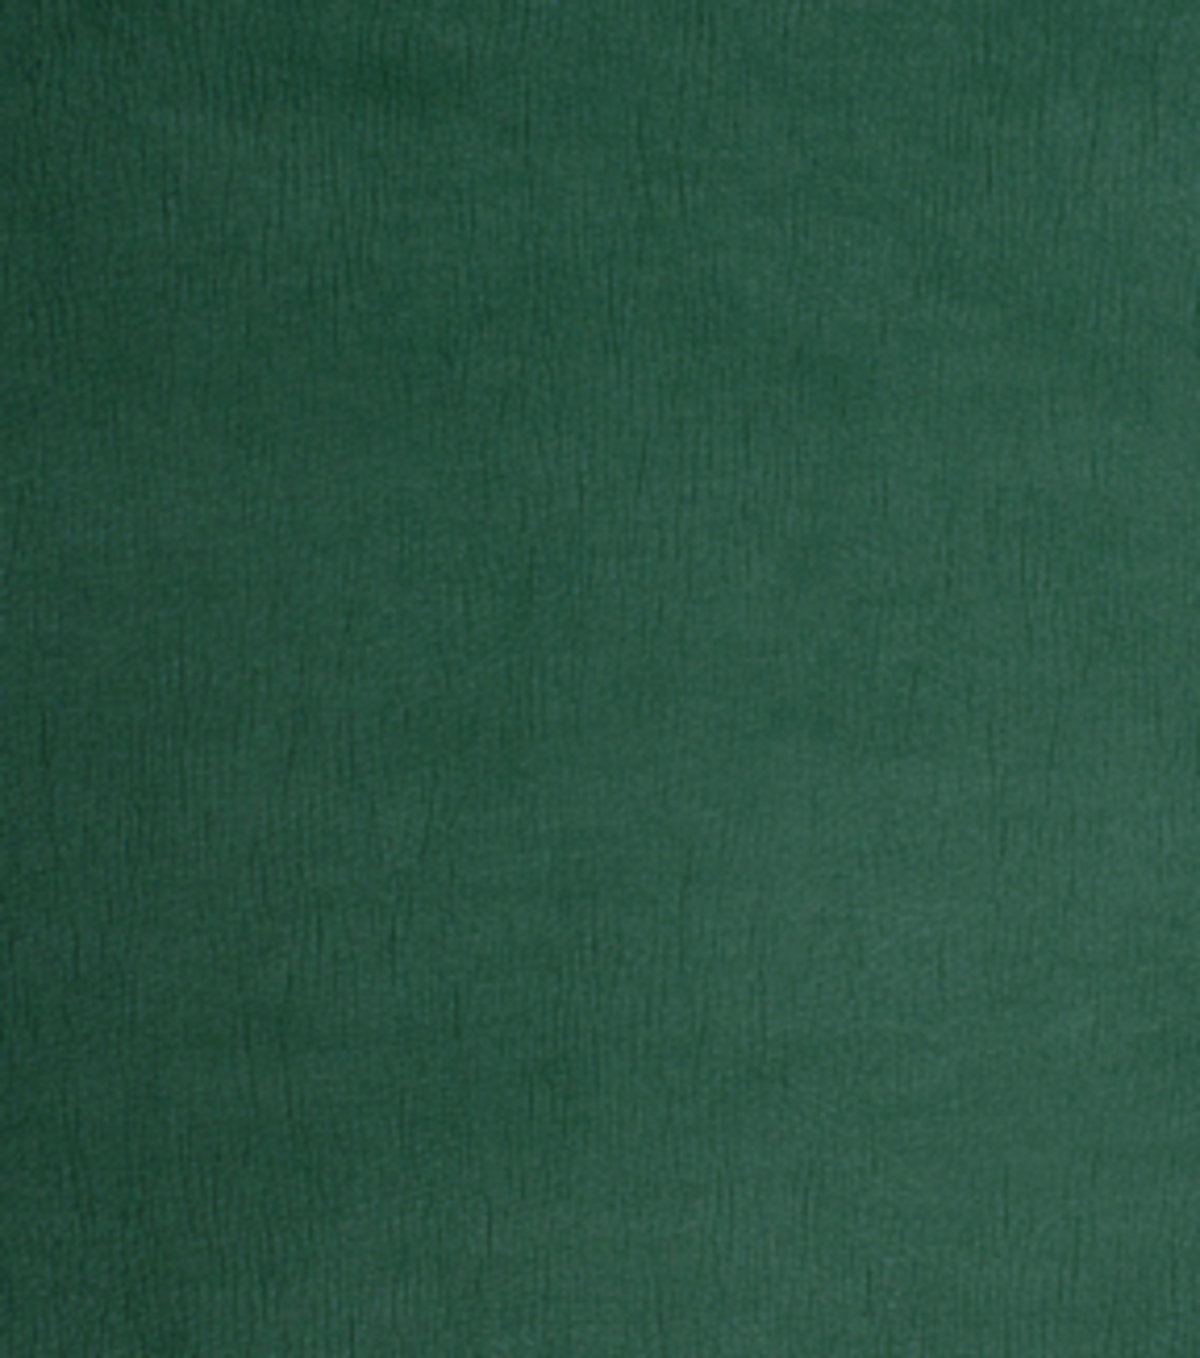 Home Decor 8\u0022x8\u0022 Fabric Swatch-Sta-Kleen Vinyl Court Evergreen